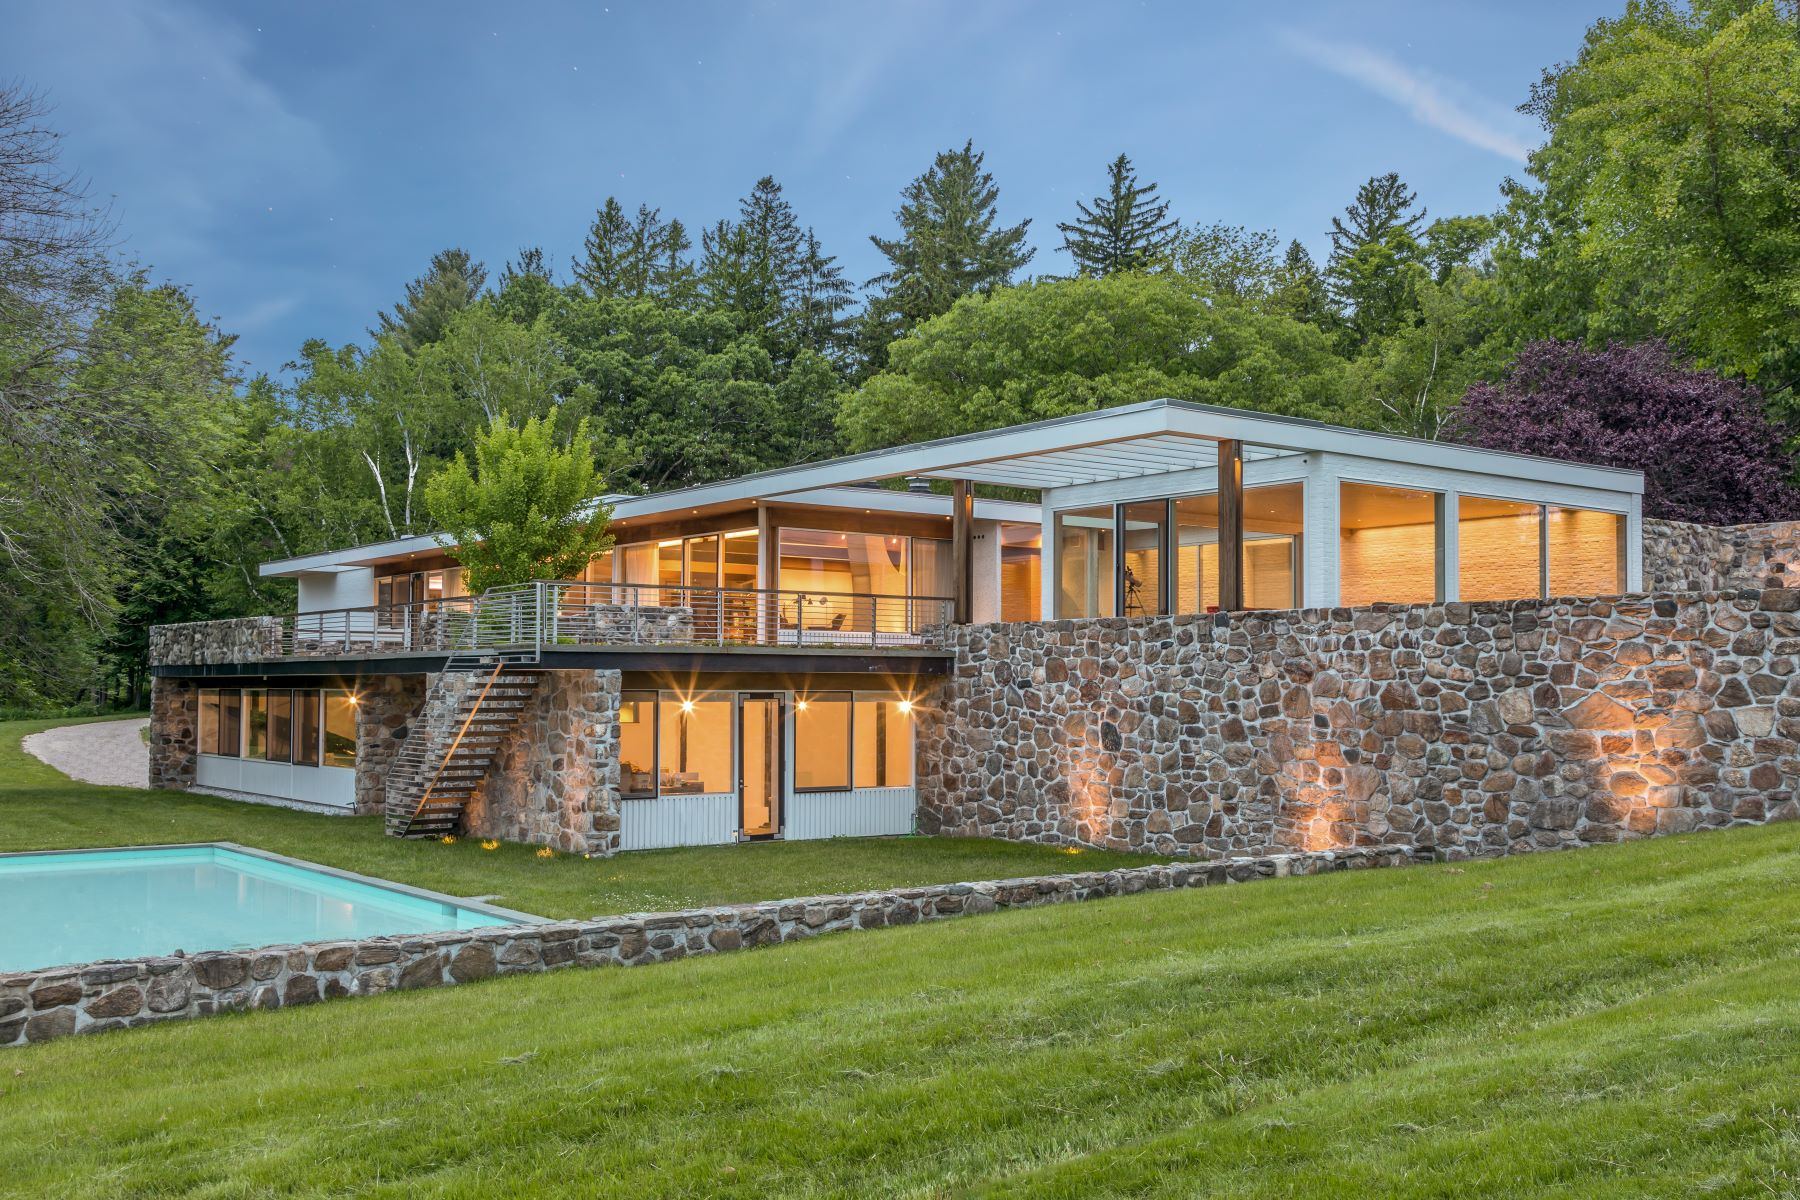 Single Family Homes for Active at Marcel Breuer's Gagarin House 1: A Mid-Century Masterpiece 144 Gallows Lane Litchfield, Connecticut 06759 United States